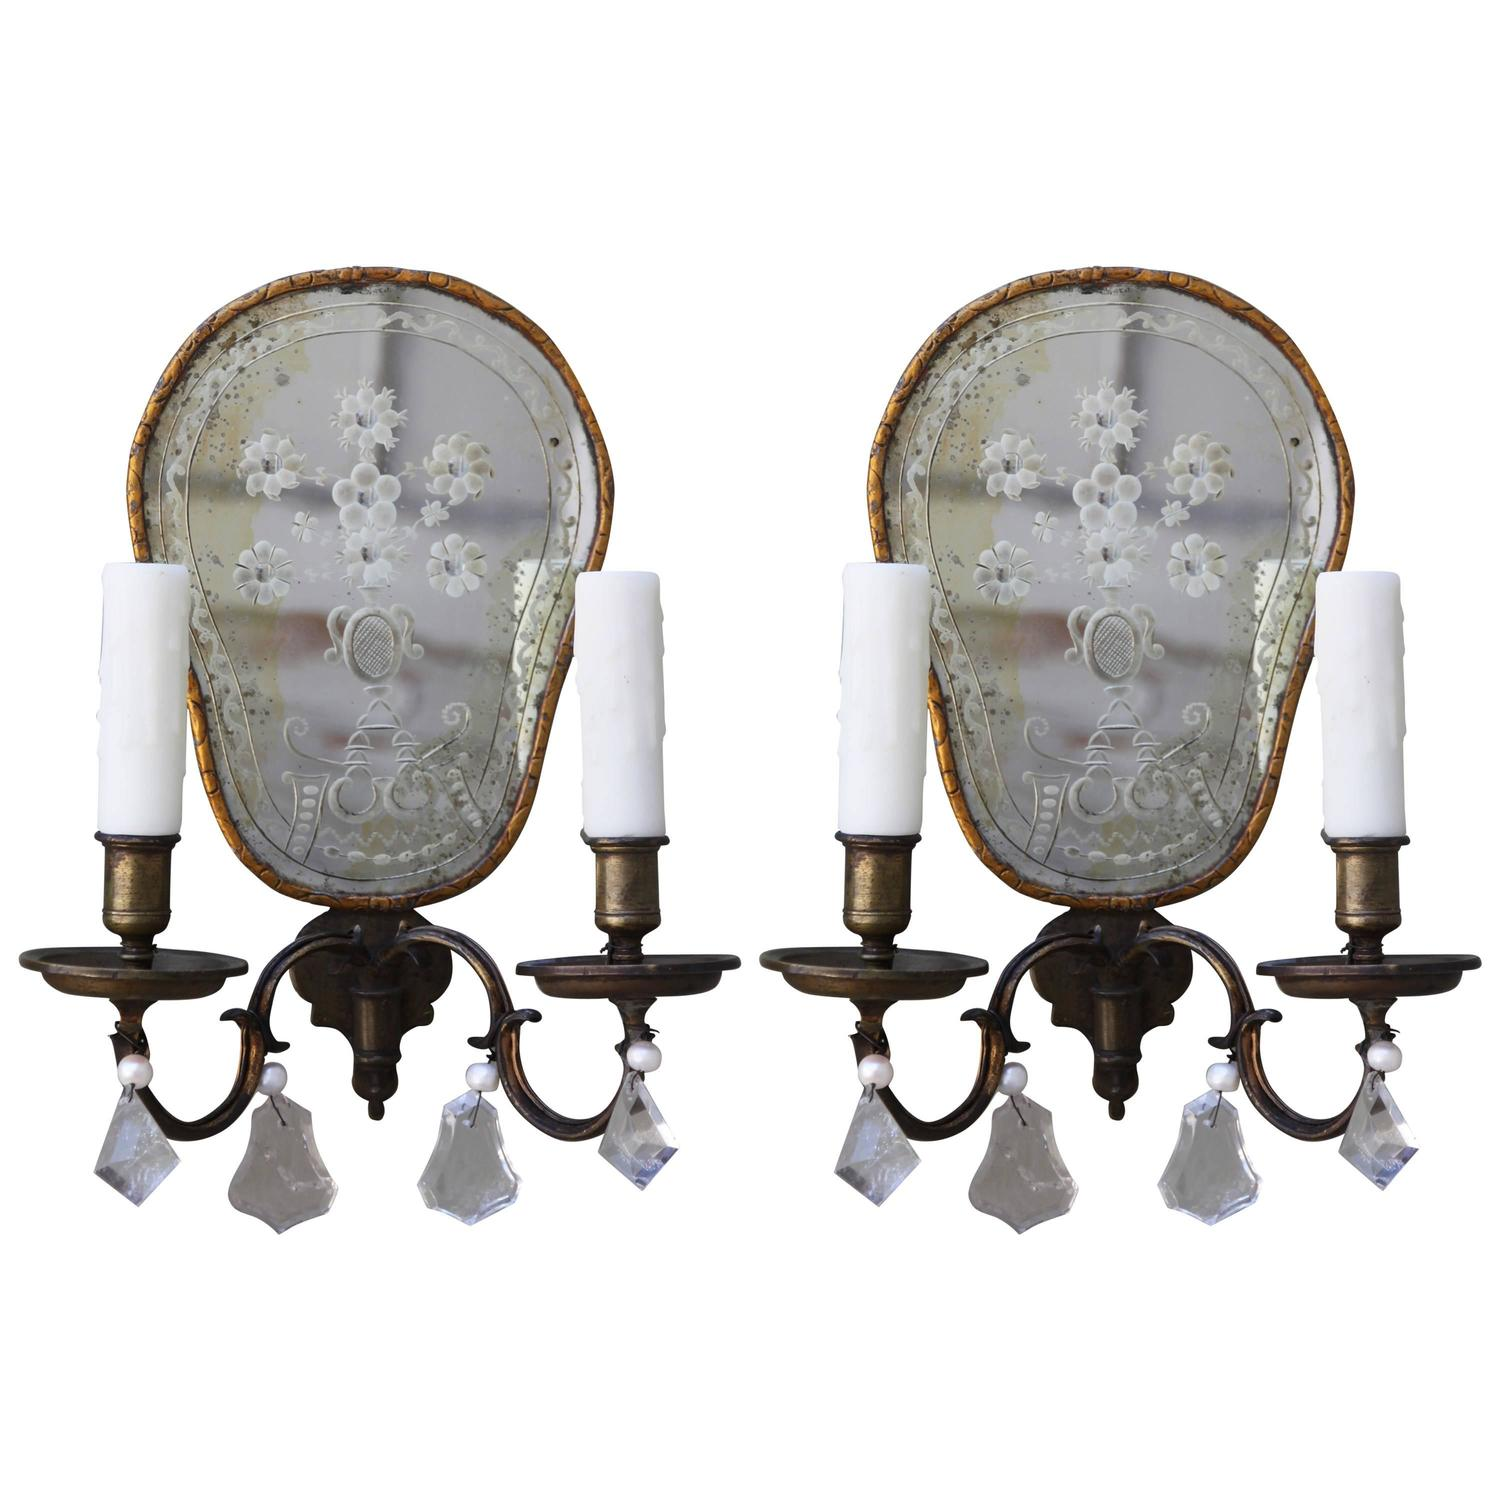 sconces product nancy tulipaverticle corzine sconce mirrored wall web tulipa